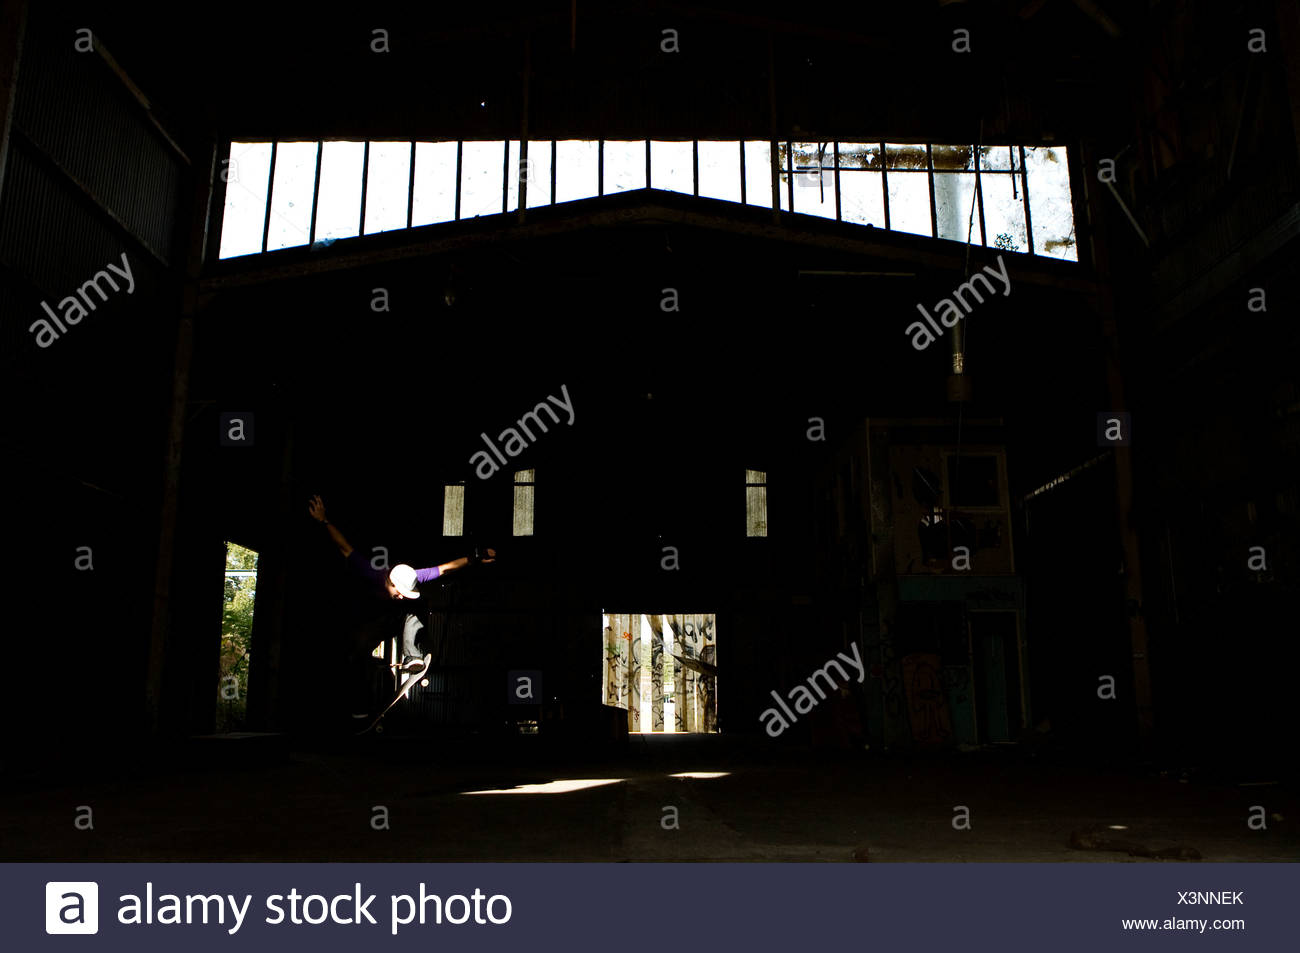 A skater ollies in an abandoned warehouse on the Central Coast, New South Wales, Australia. - Stock Image